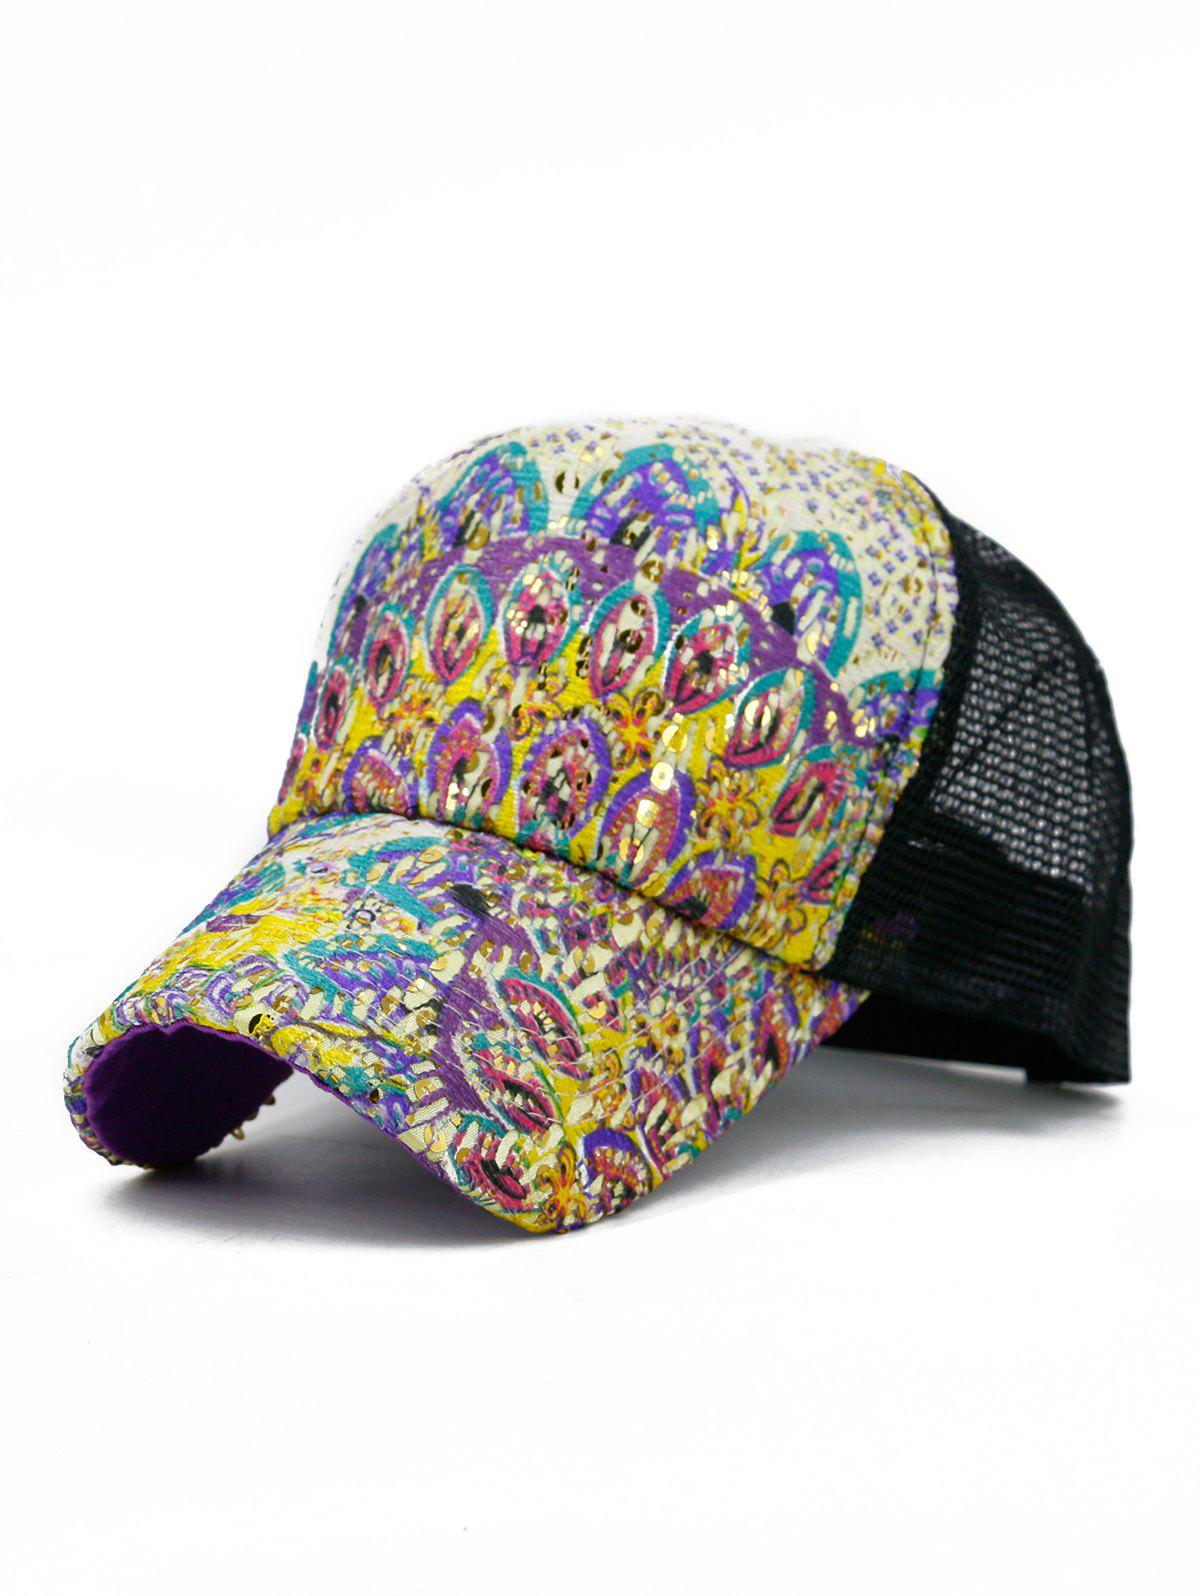 Best Peacock Tail Decorative Mesh Baseball Hat